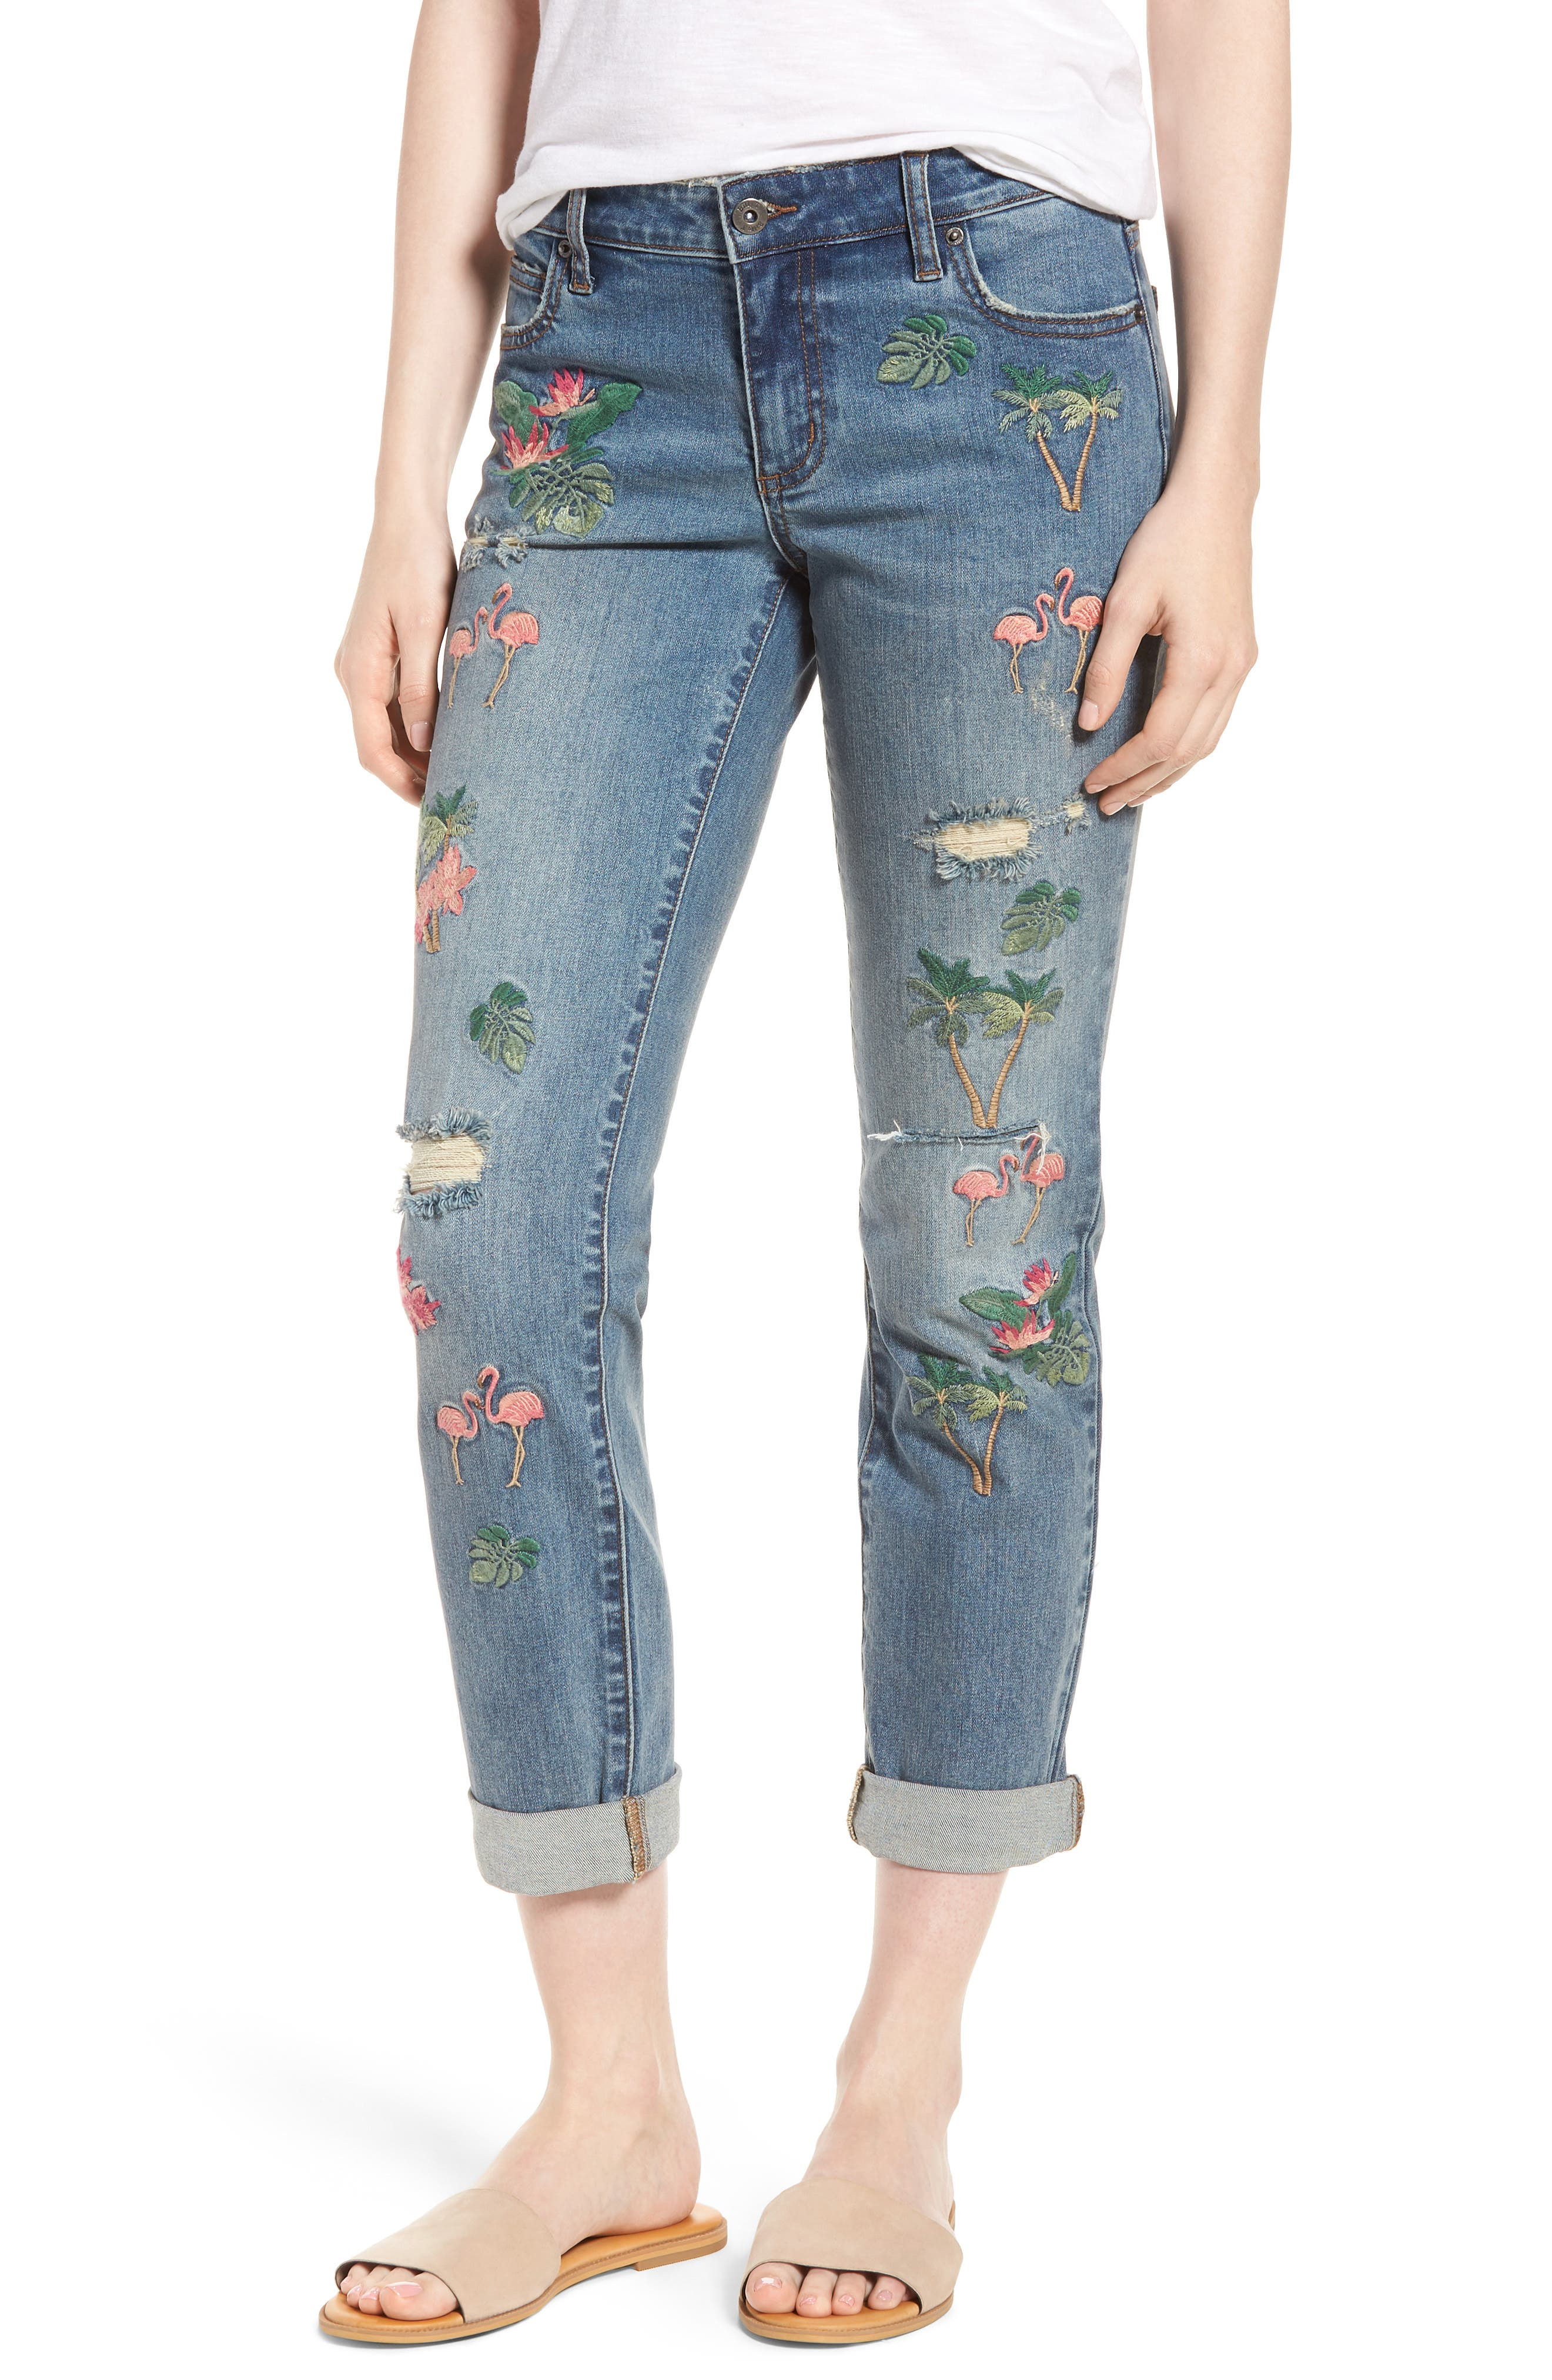 Flamingo Embroidery Jeans,                         Main,                         color, Blue W/ Embroider